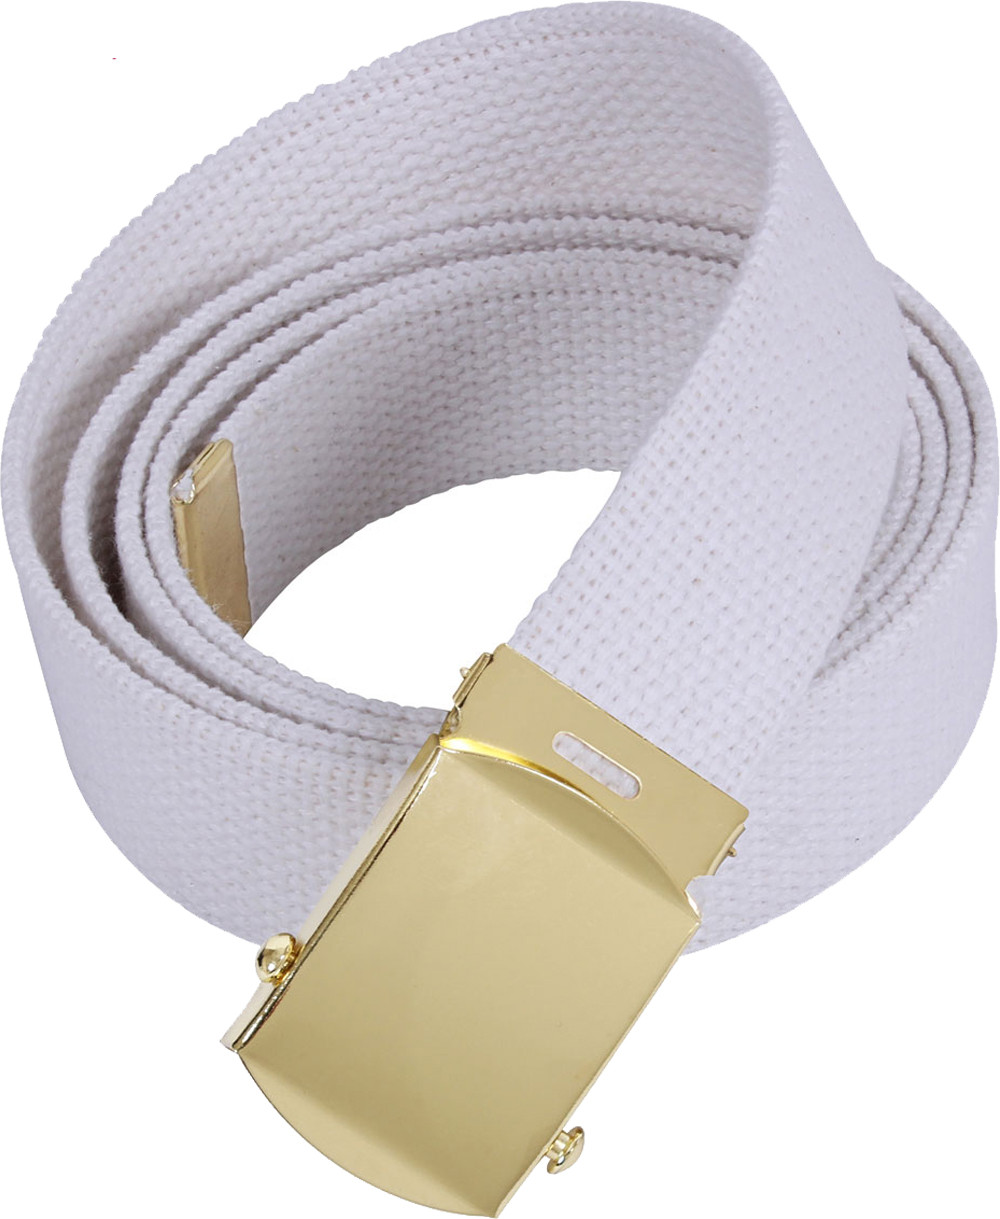 White Military Web Belt with Brass Buckle 1328c3f00f0